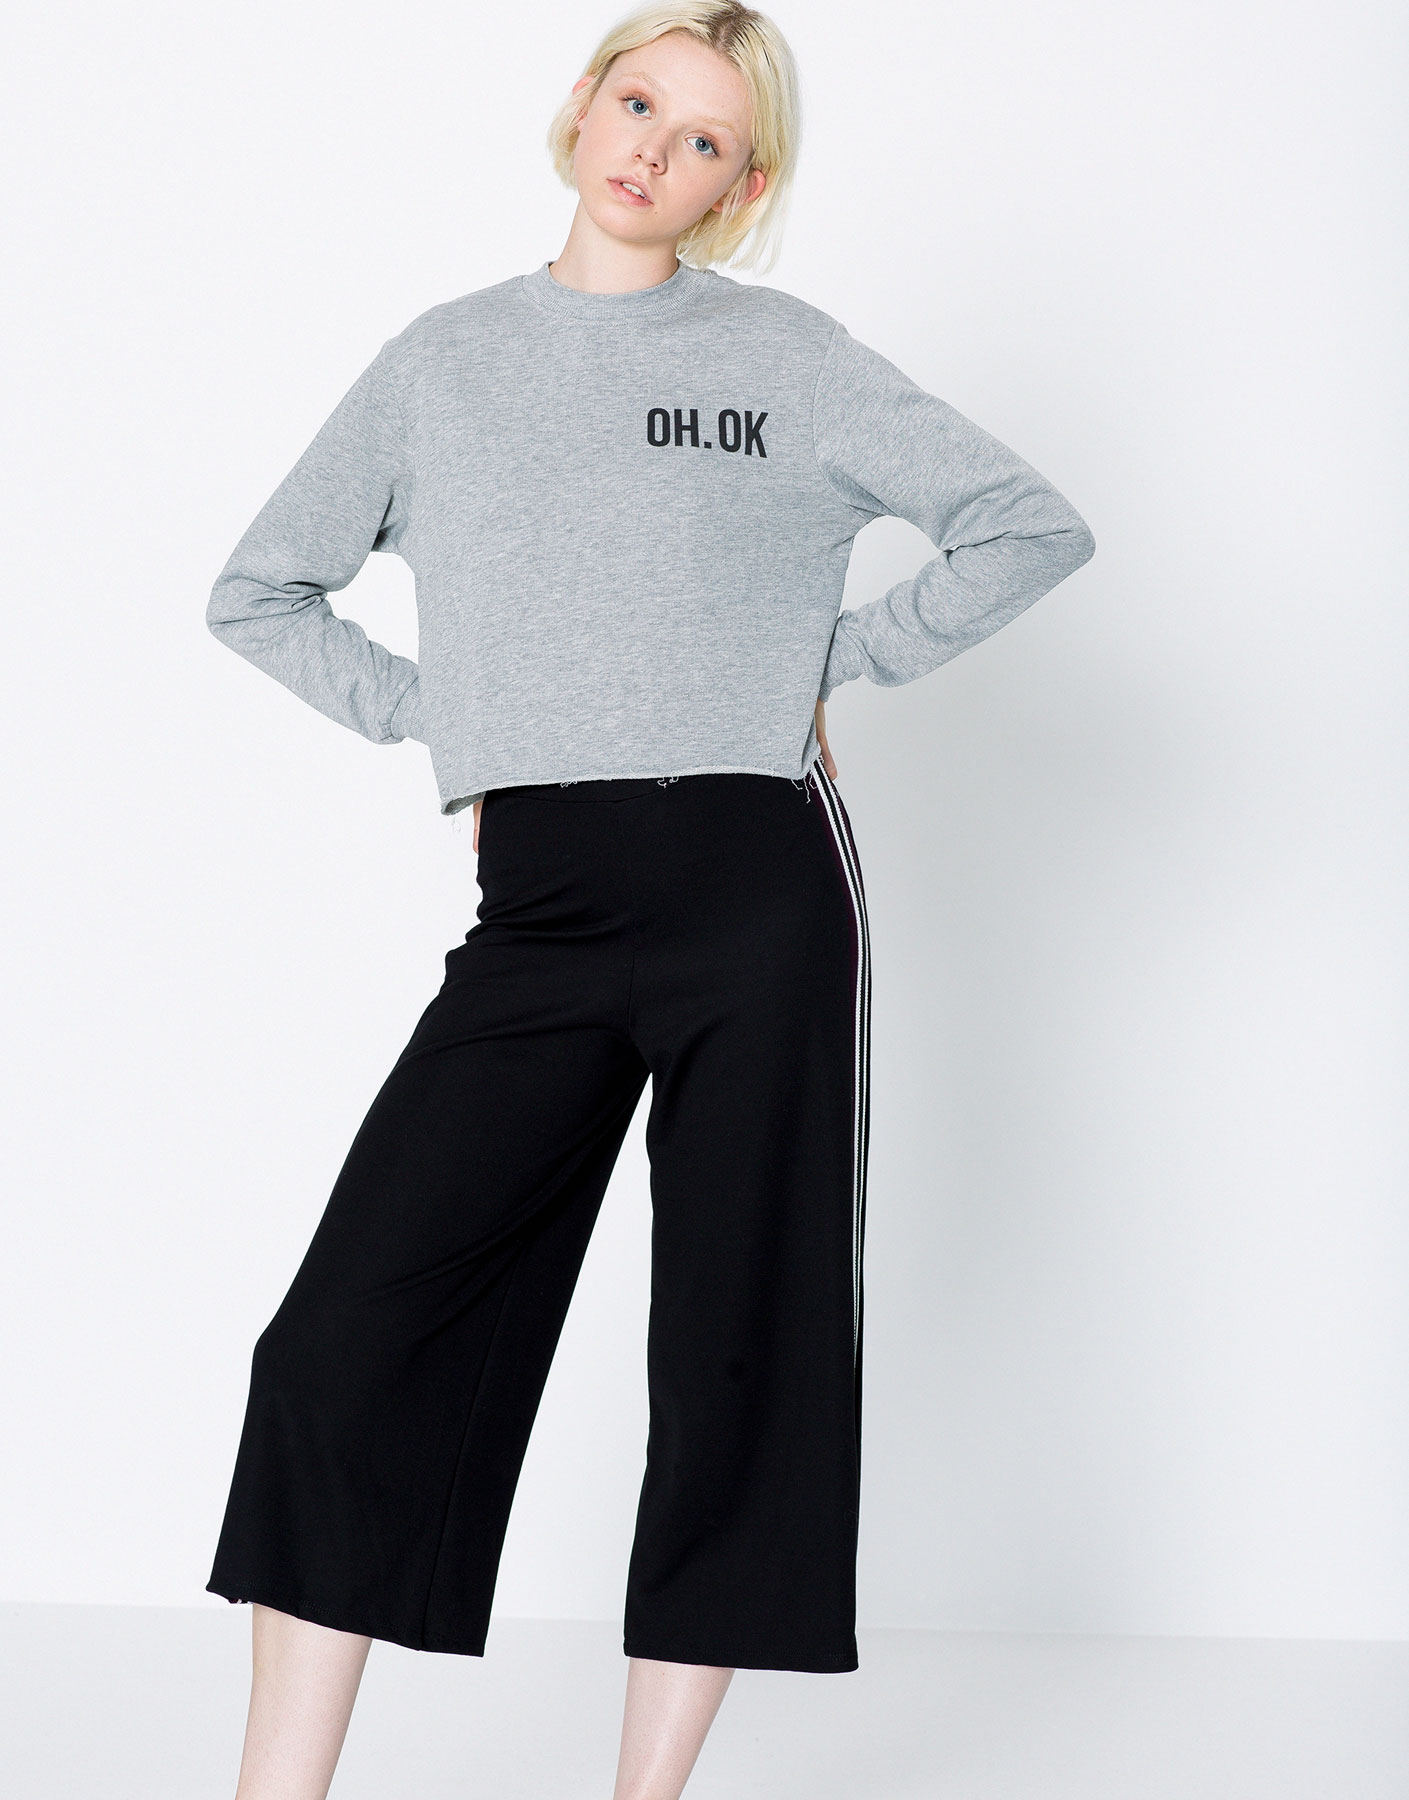 Cropped sweatshirt with text